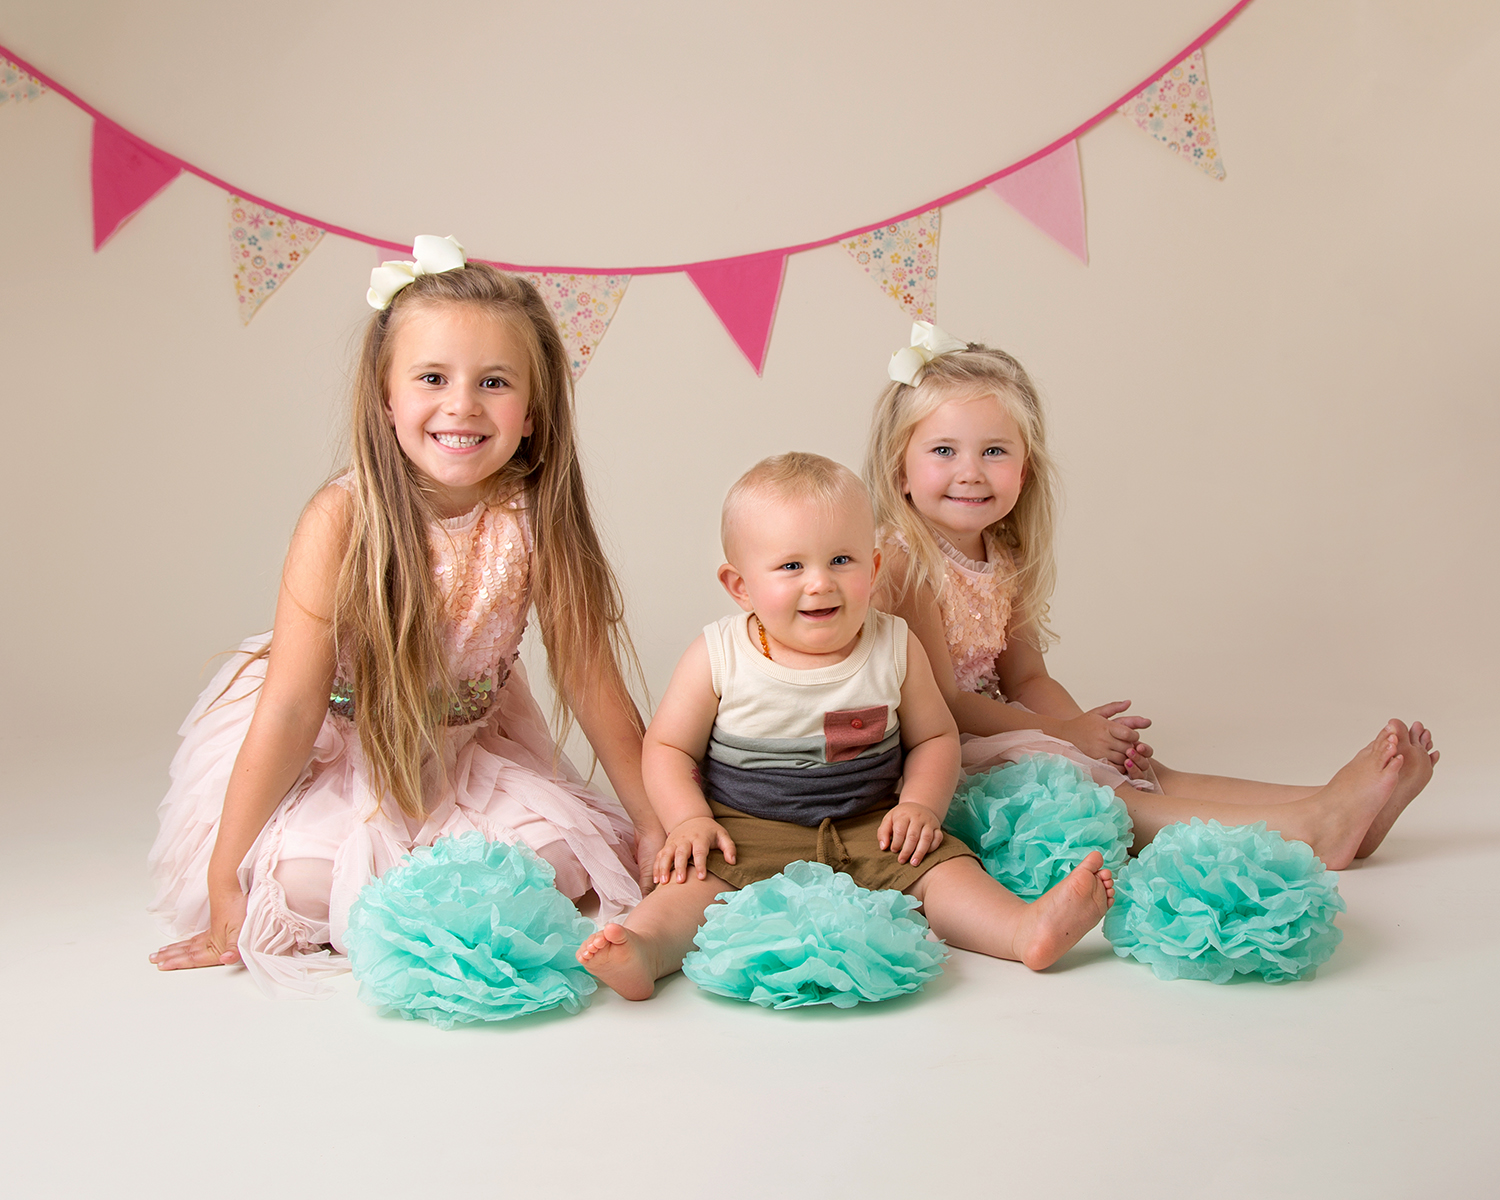 Elisabeth Franco Photography children's and family photographer based in Gloucester